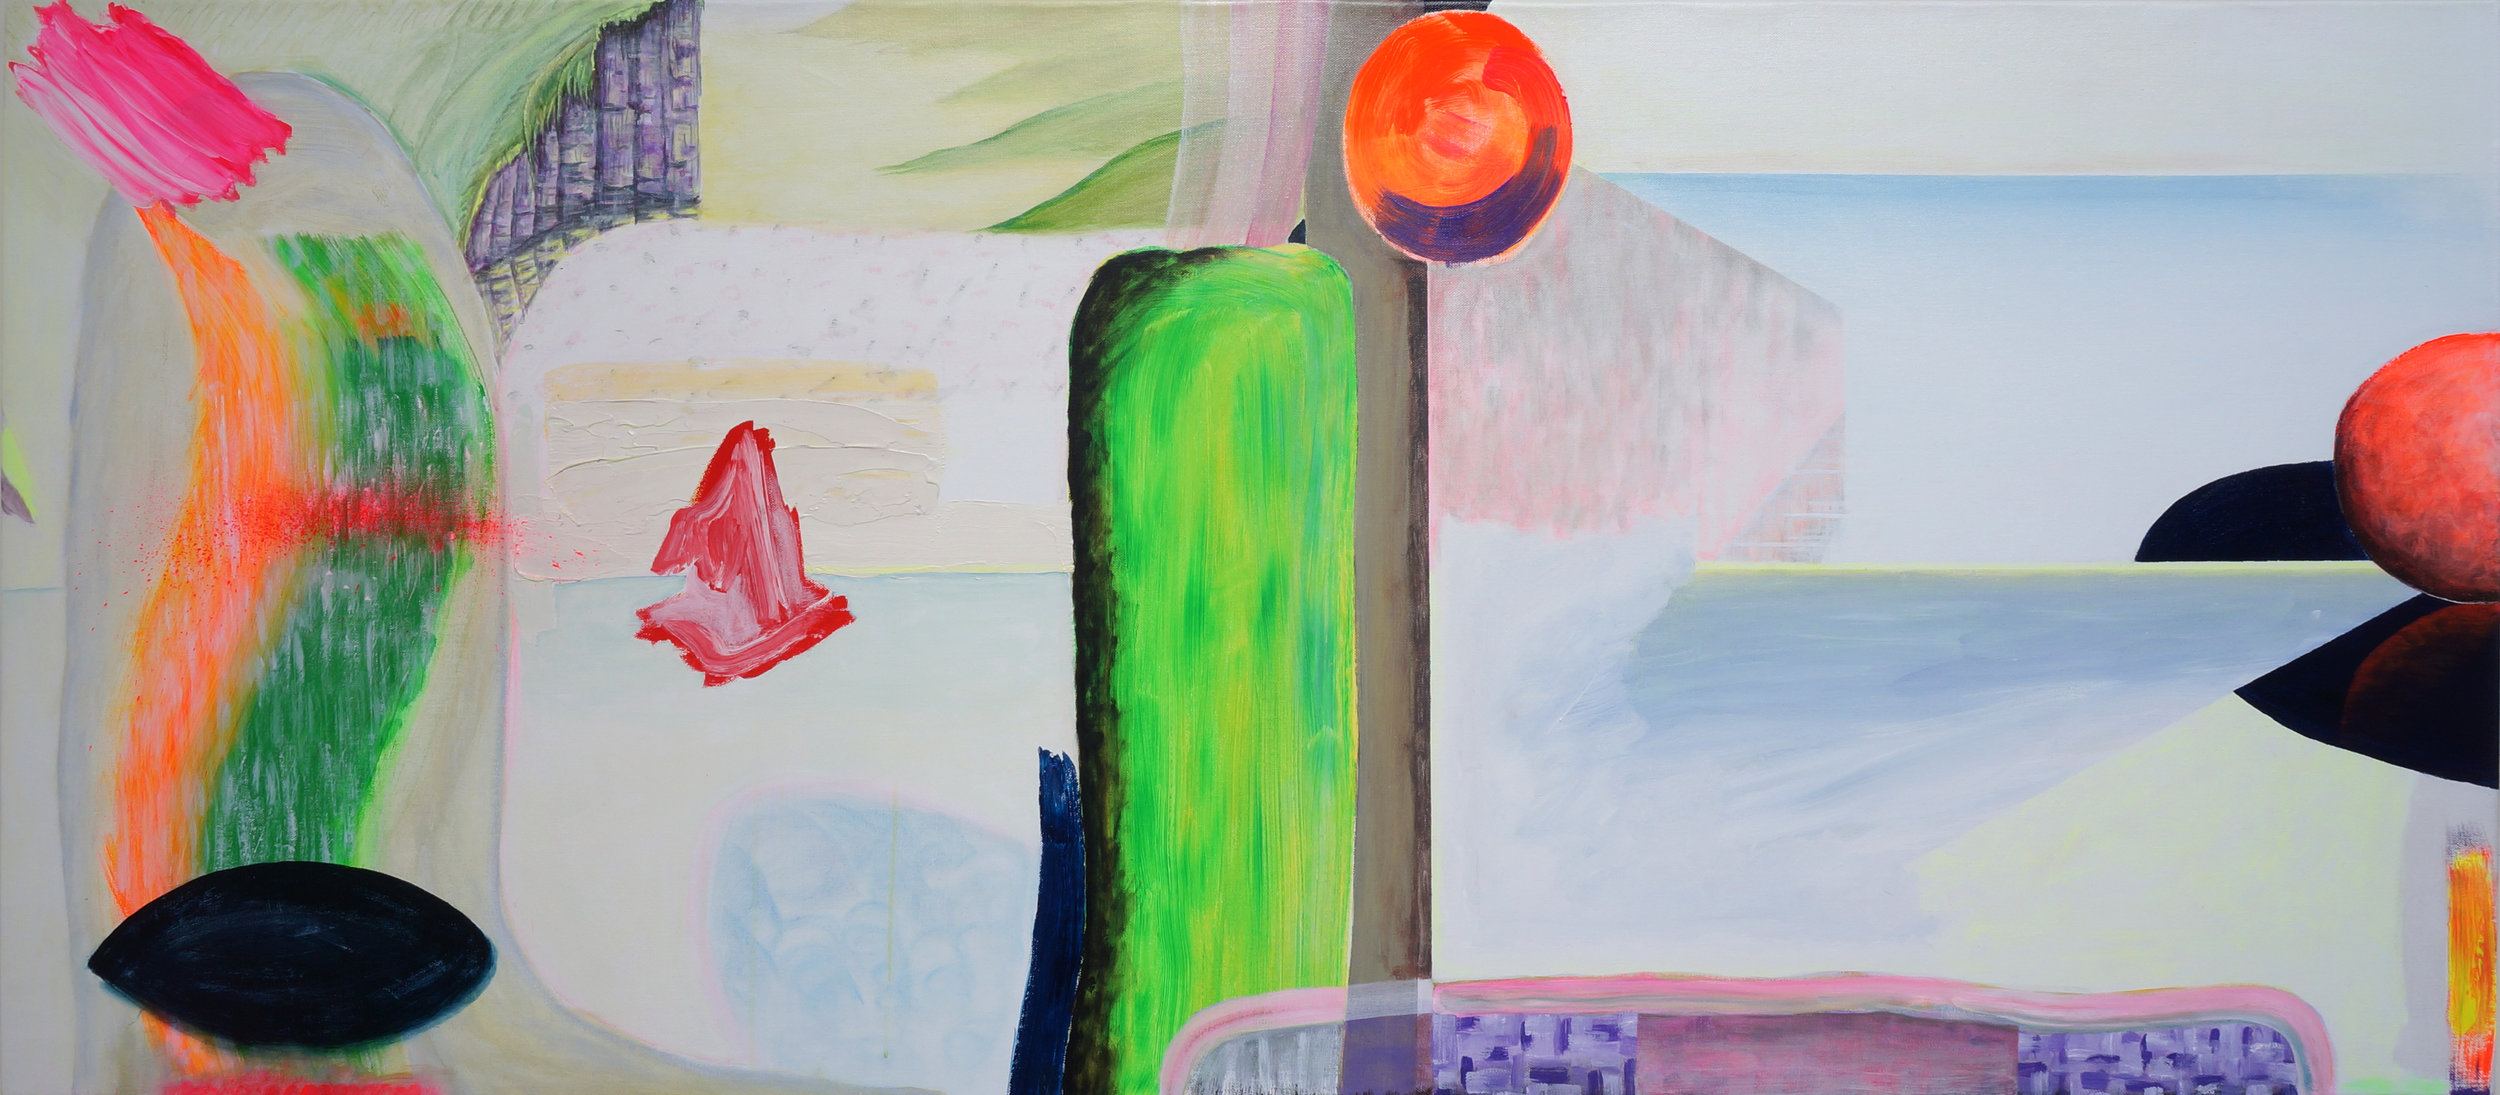 Untitled (Moses casts the stone tablets), 2018  acrylic, oil and gouache on linen  100 x 200 cm